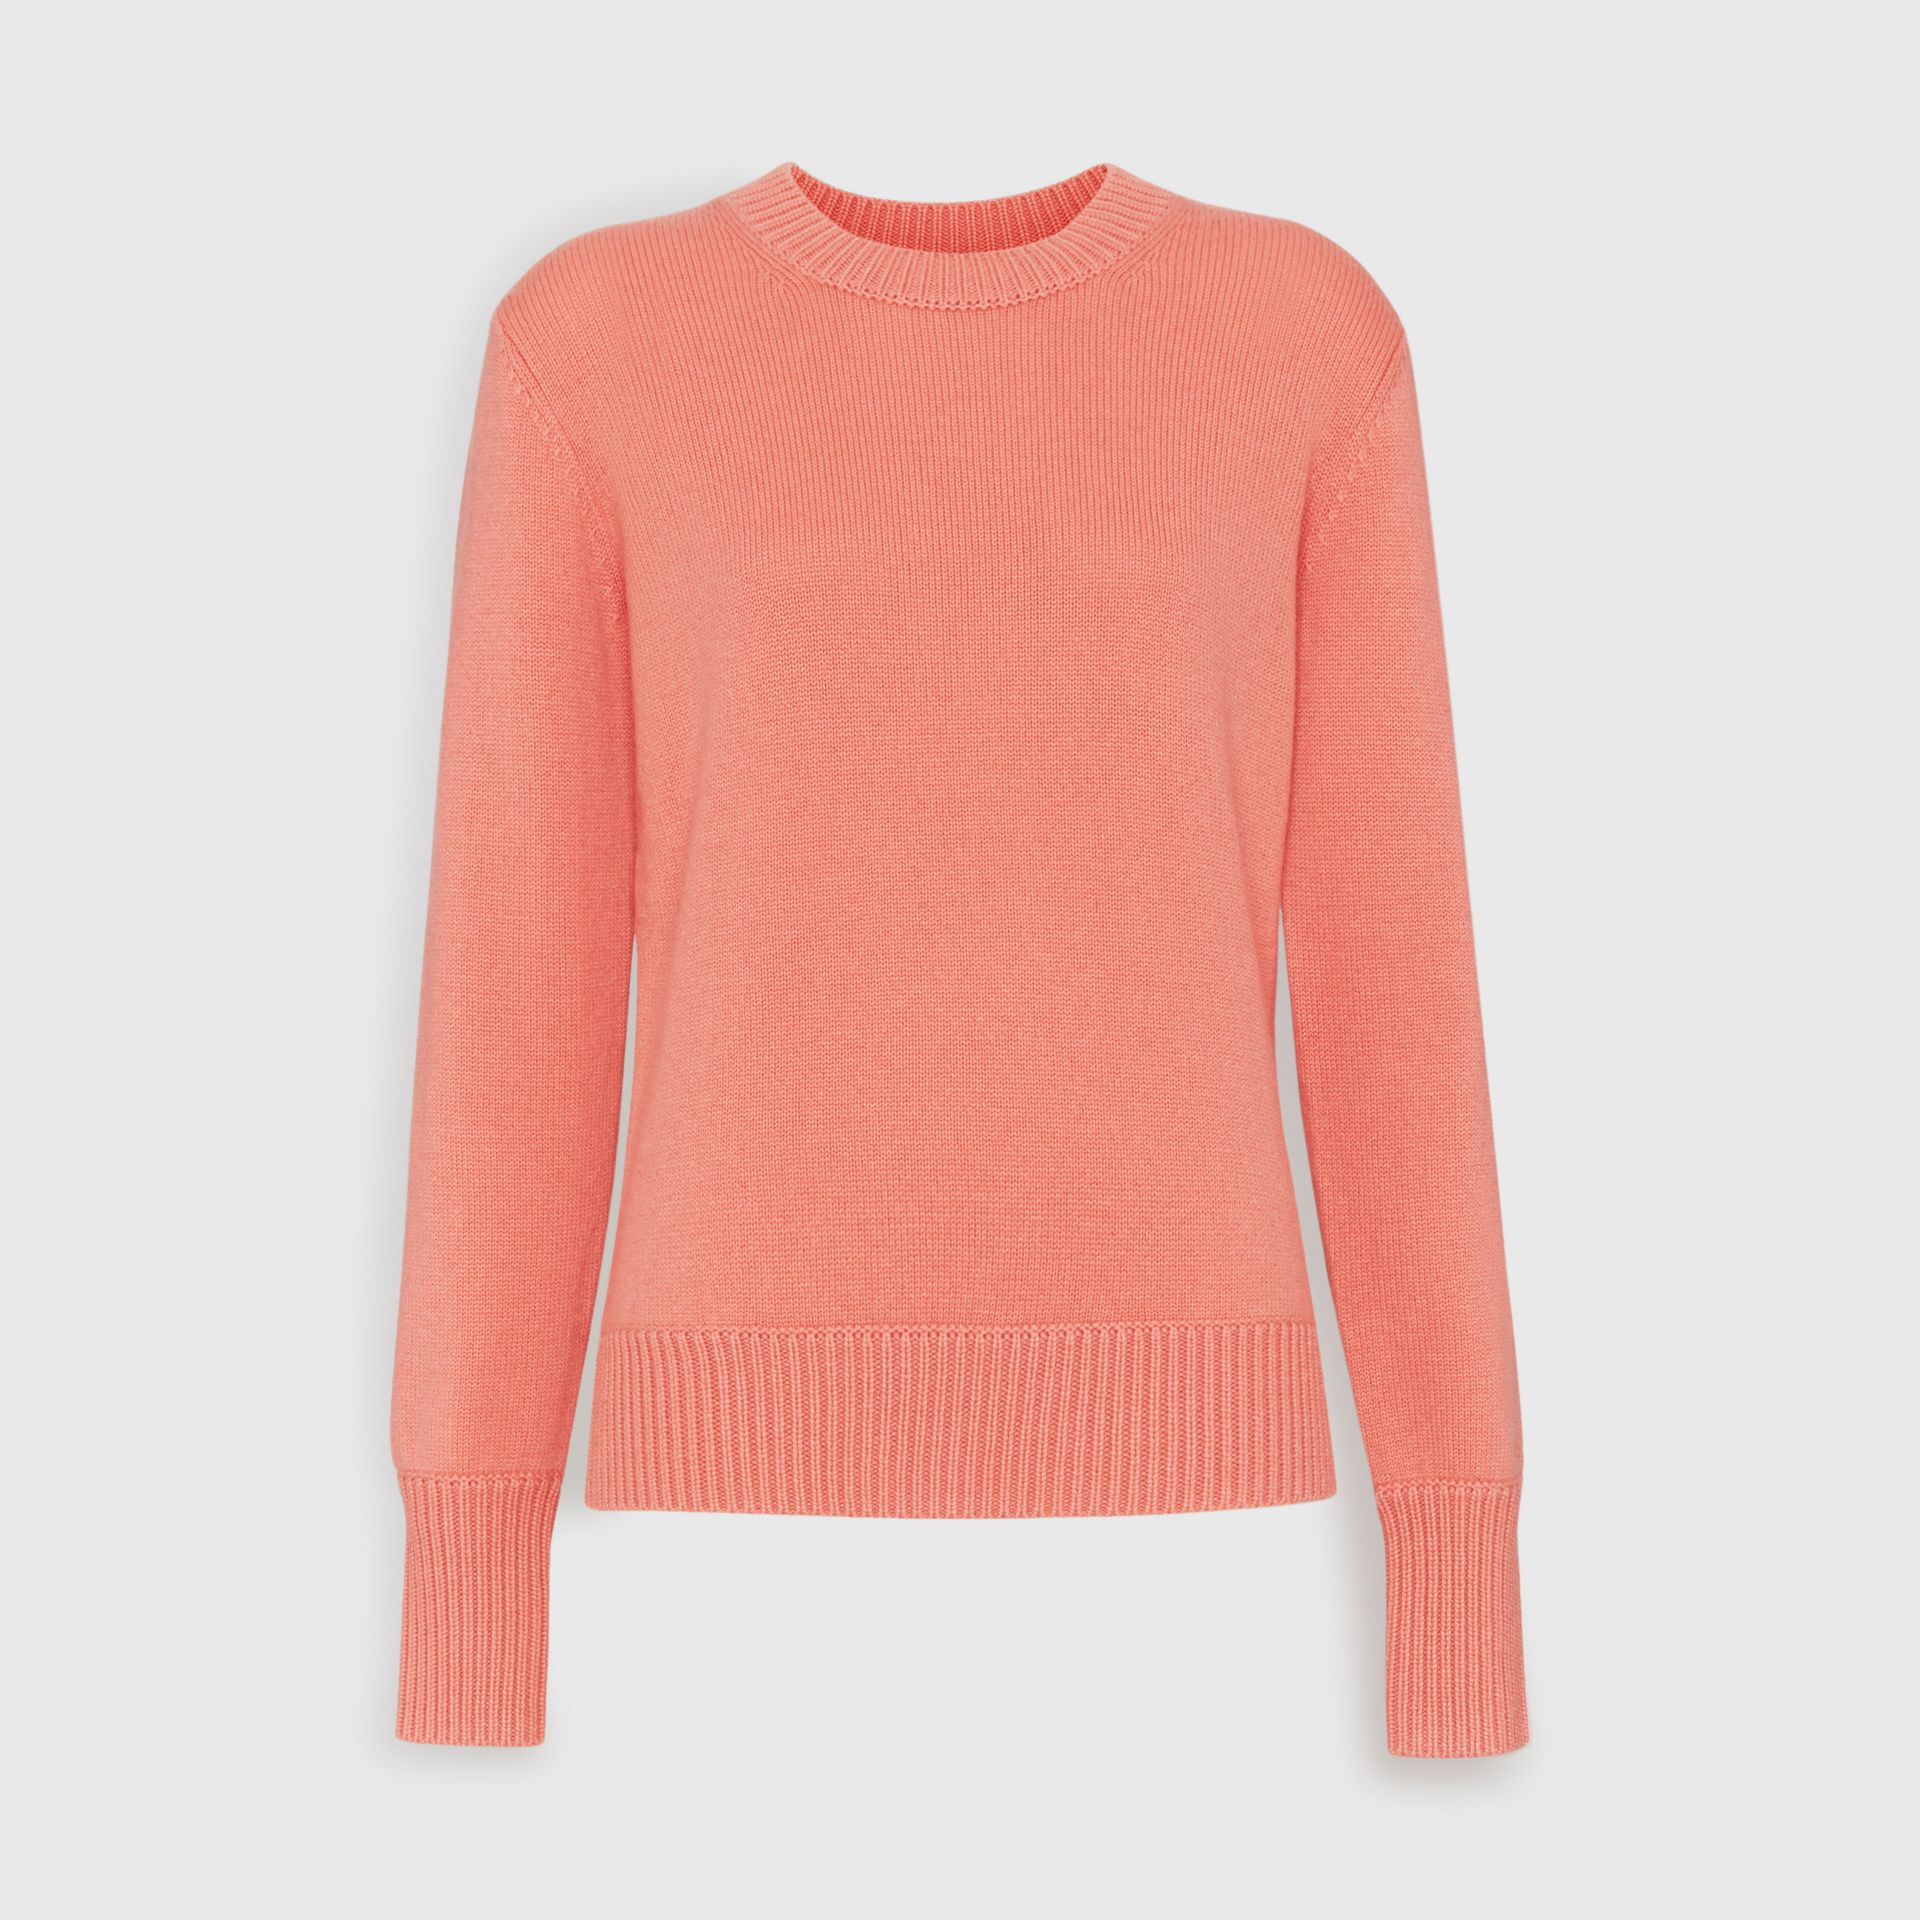 Archive Logo Appliqué Cashmere Sweater in Bright Coral Pink - Women | Burberry Singapore - gallery image 3